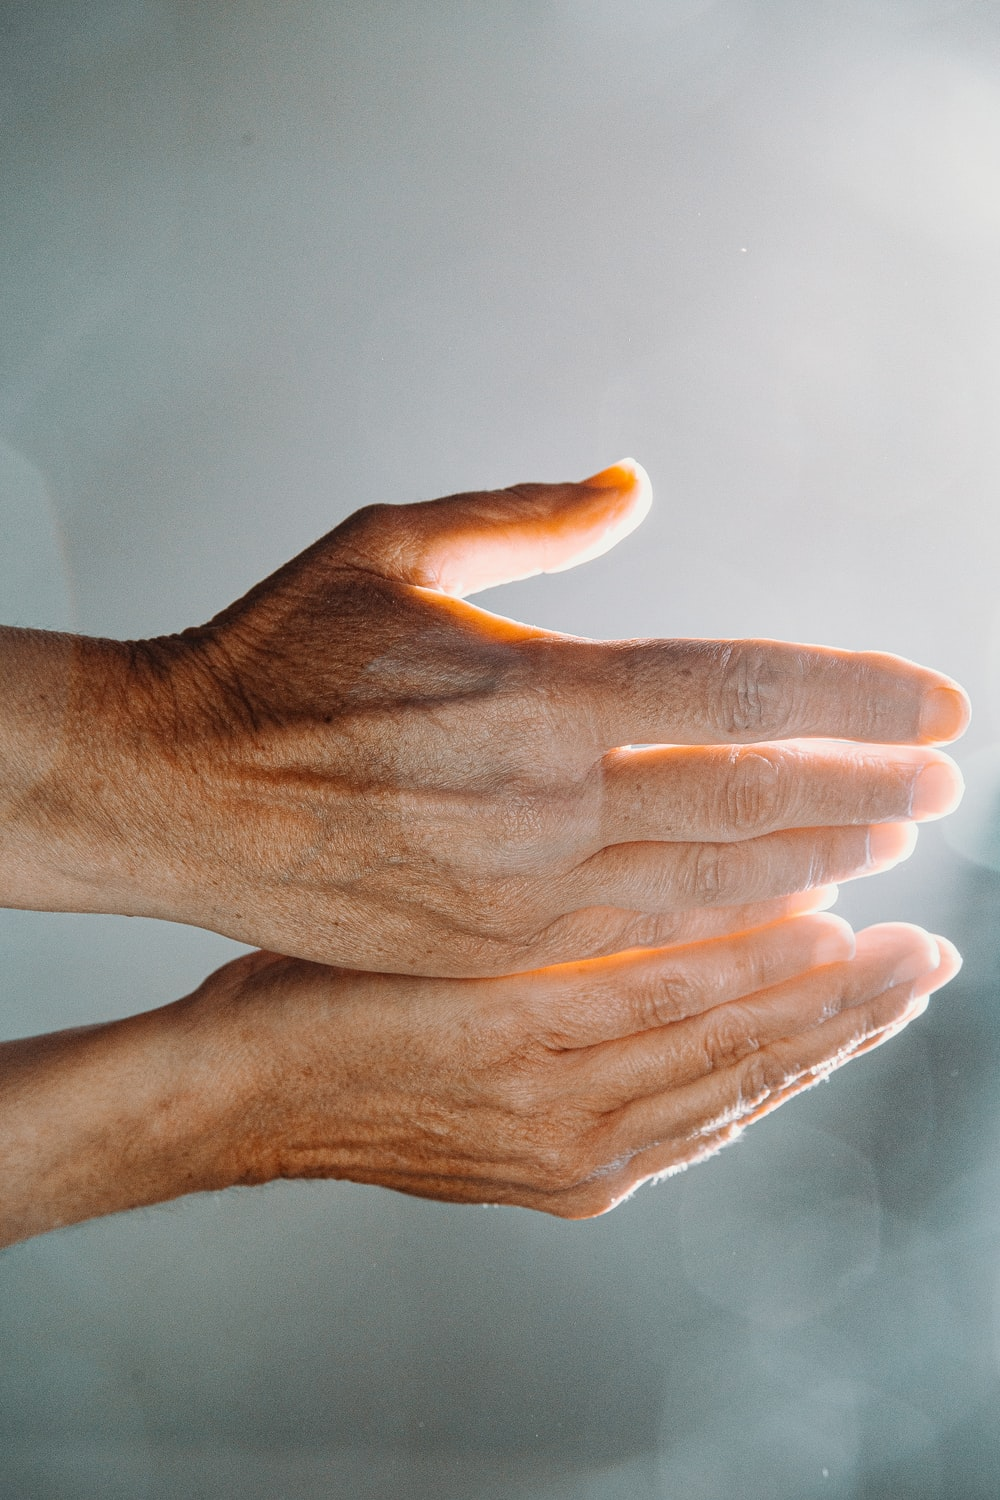 persons hand with white nail polish